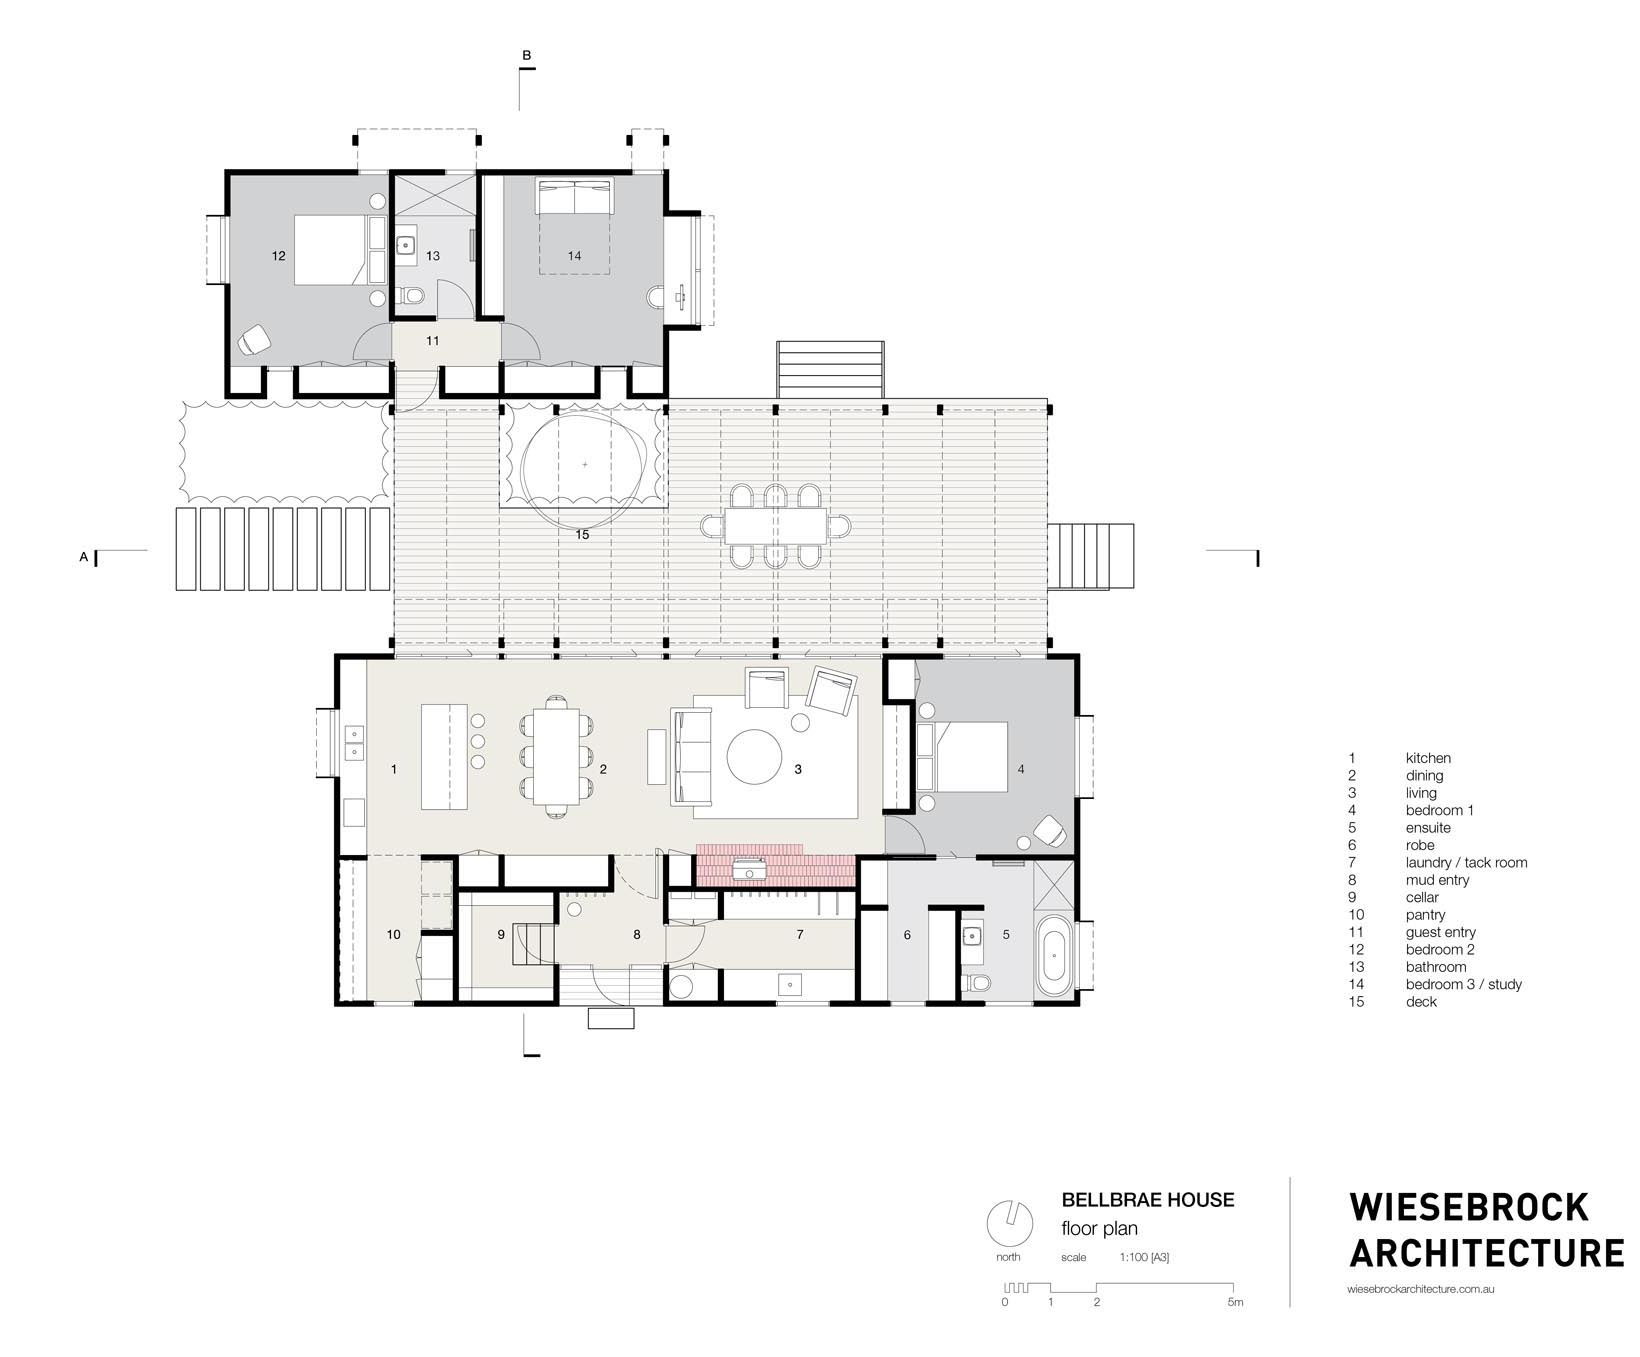 The floor plan of a modern home with two separate pavilions and a deck that links them.